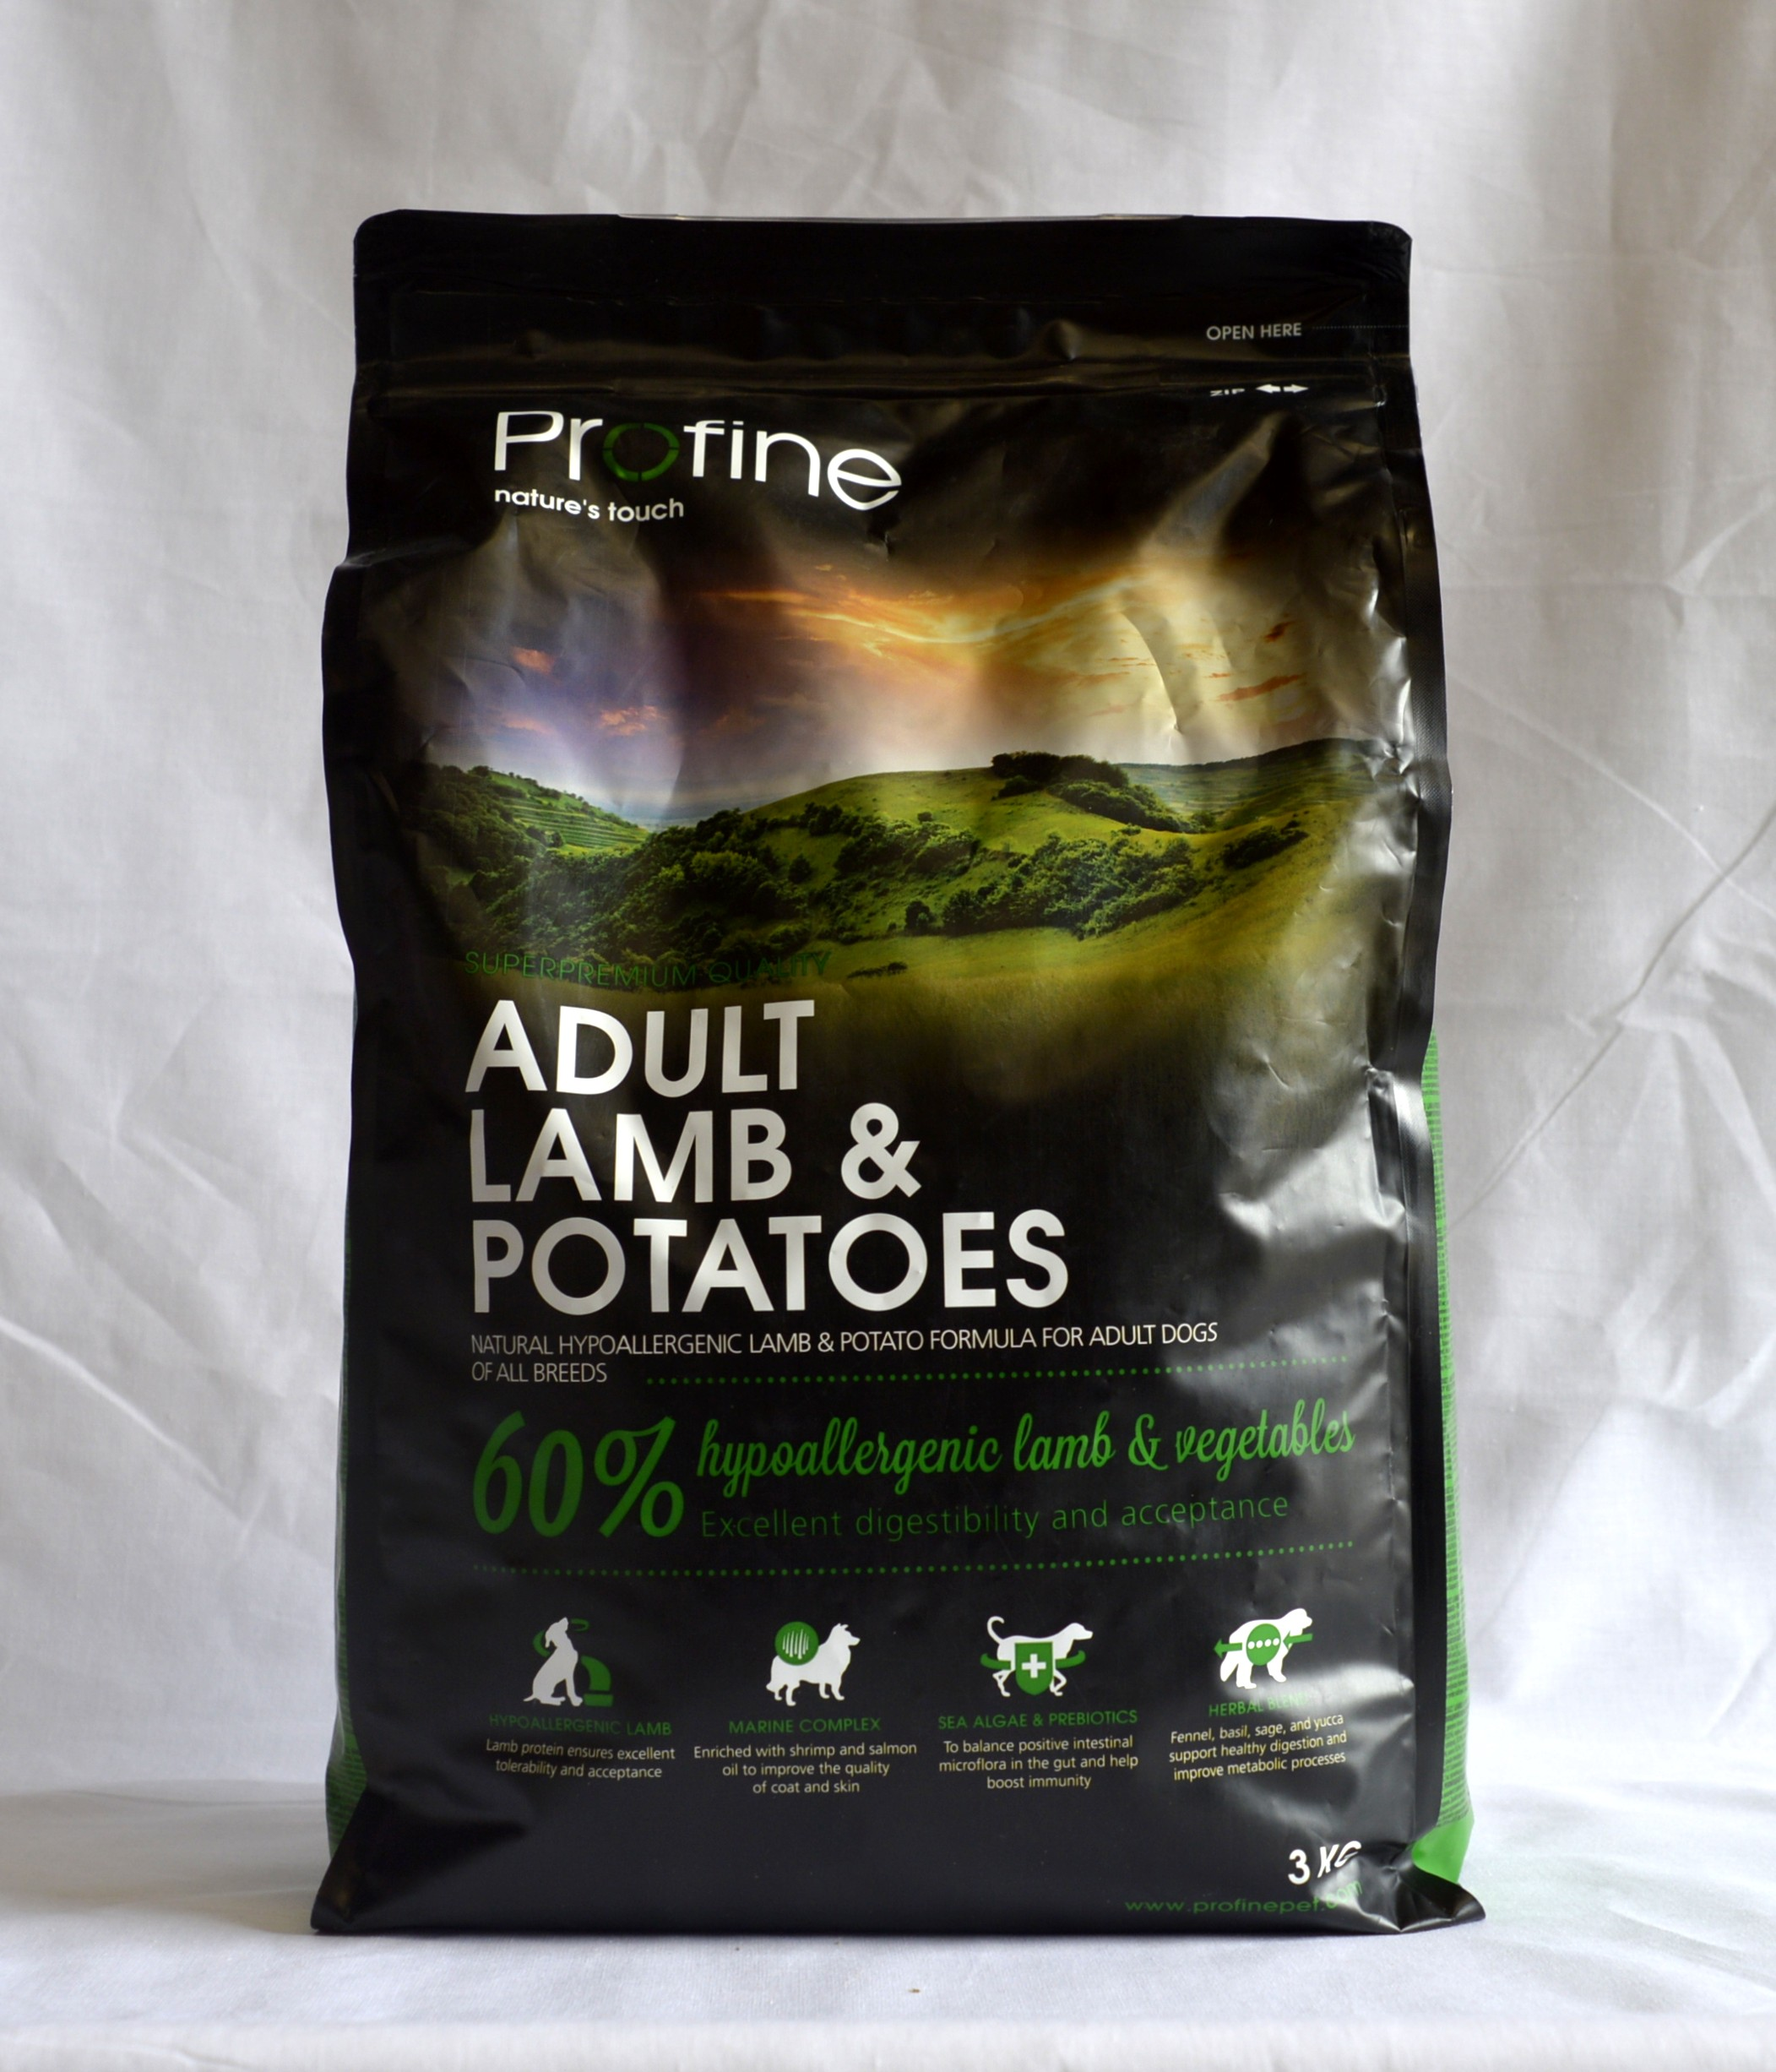 Profine Lamb & Potatoes Adult-3kg